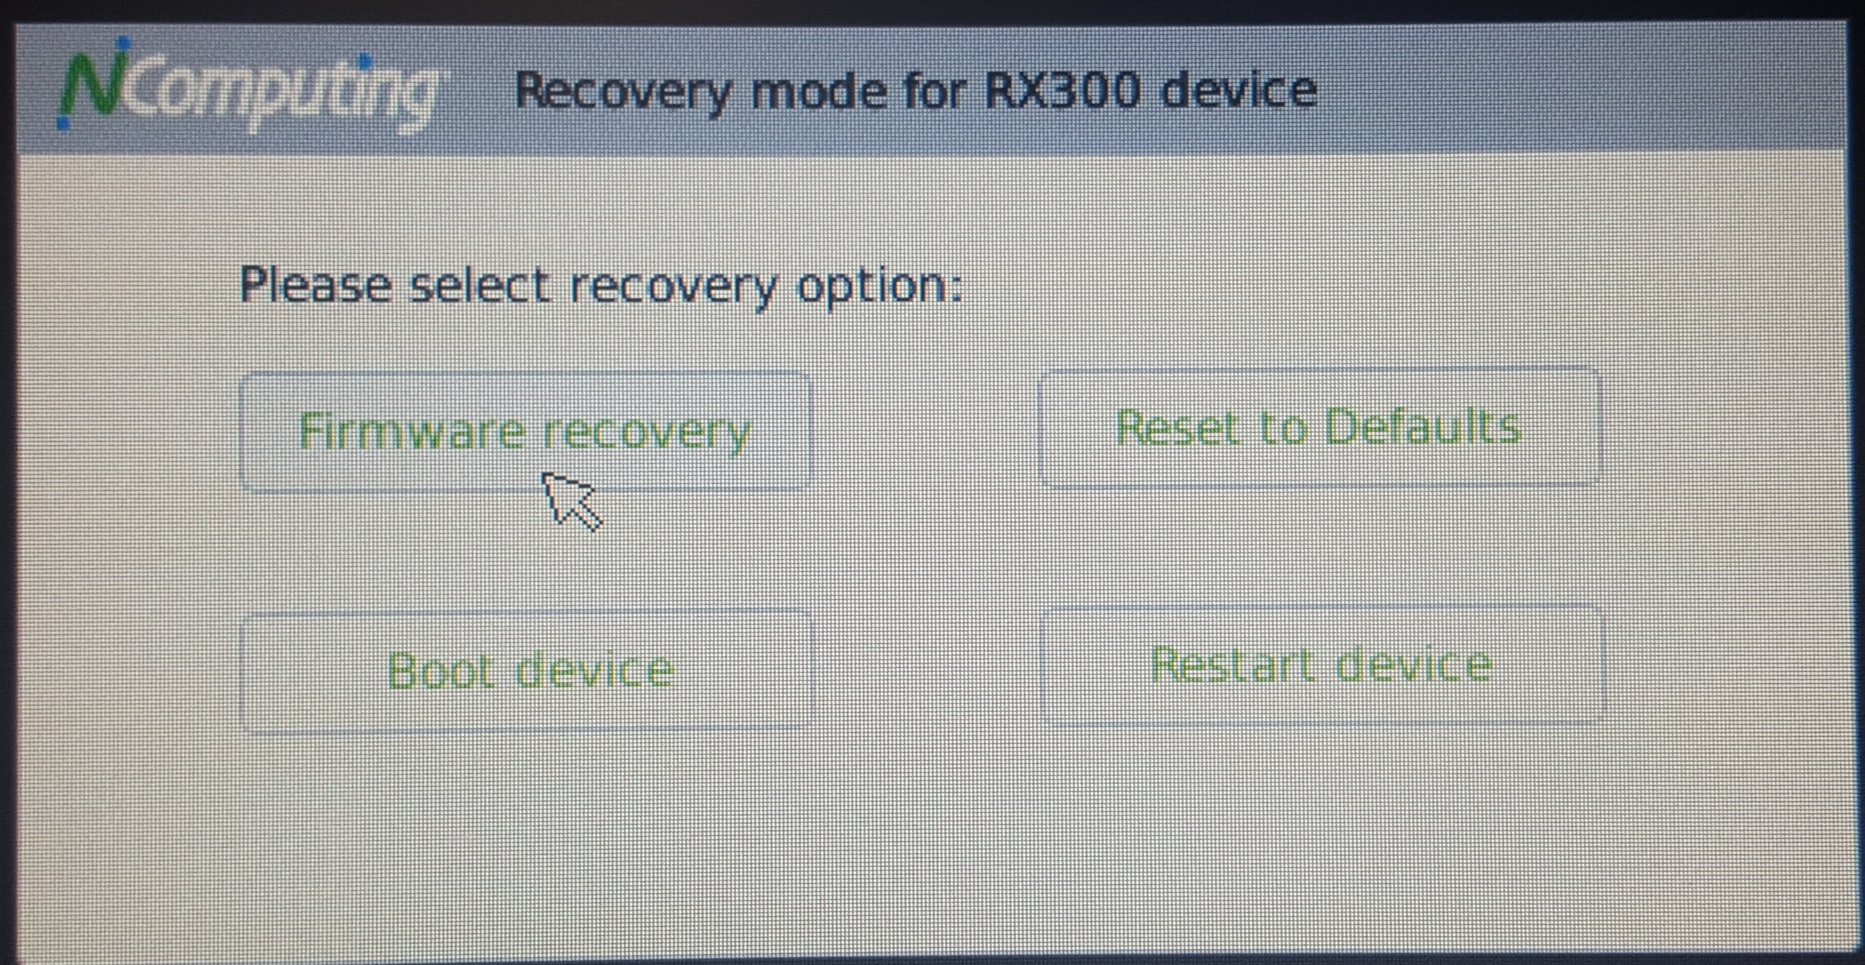 How To Recover the RX300 Firmware Image